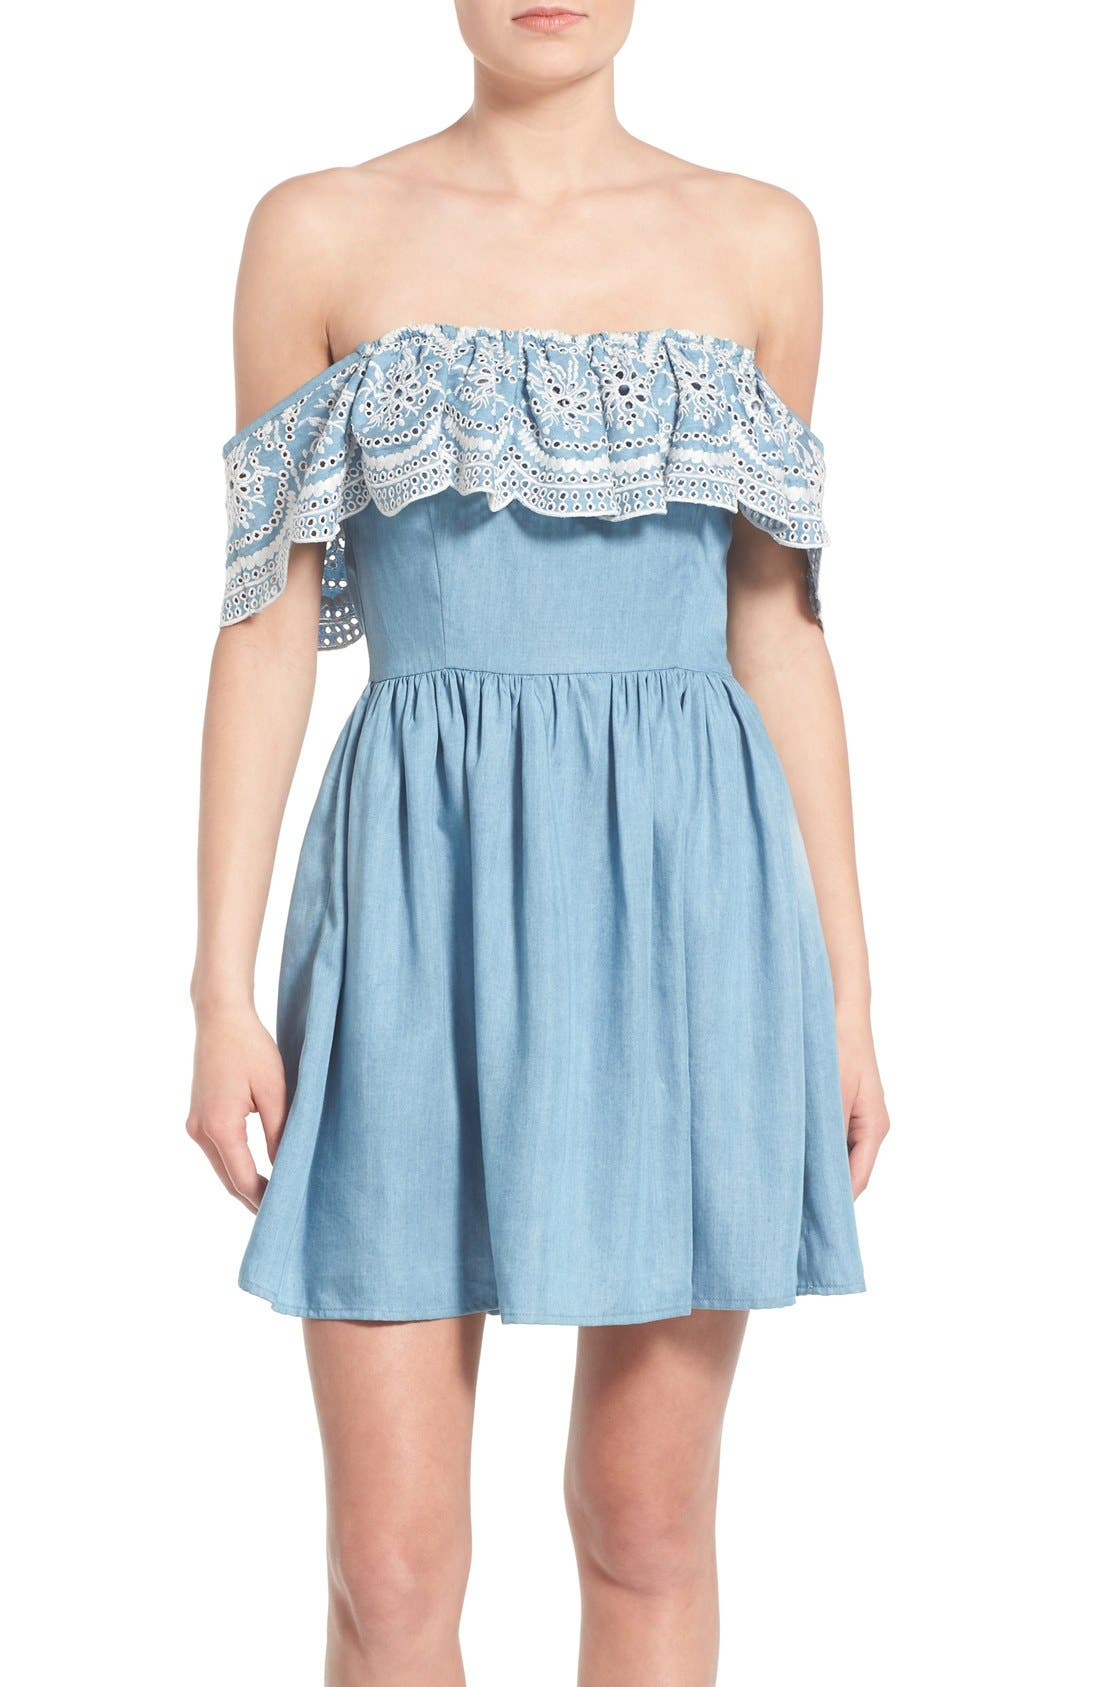 Alternate Image 1 Selected - Lovers + Friends 'Dream Vacay' Off the Shoulder Fit & Flare Dress